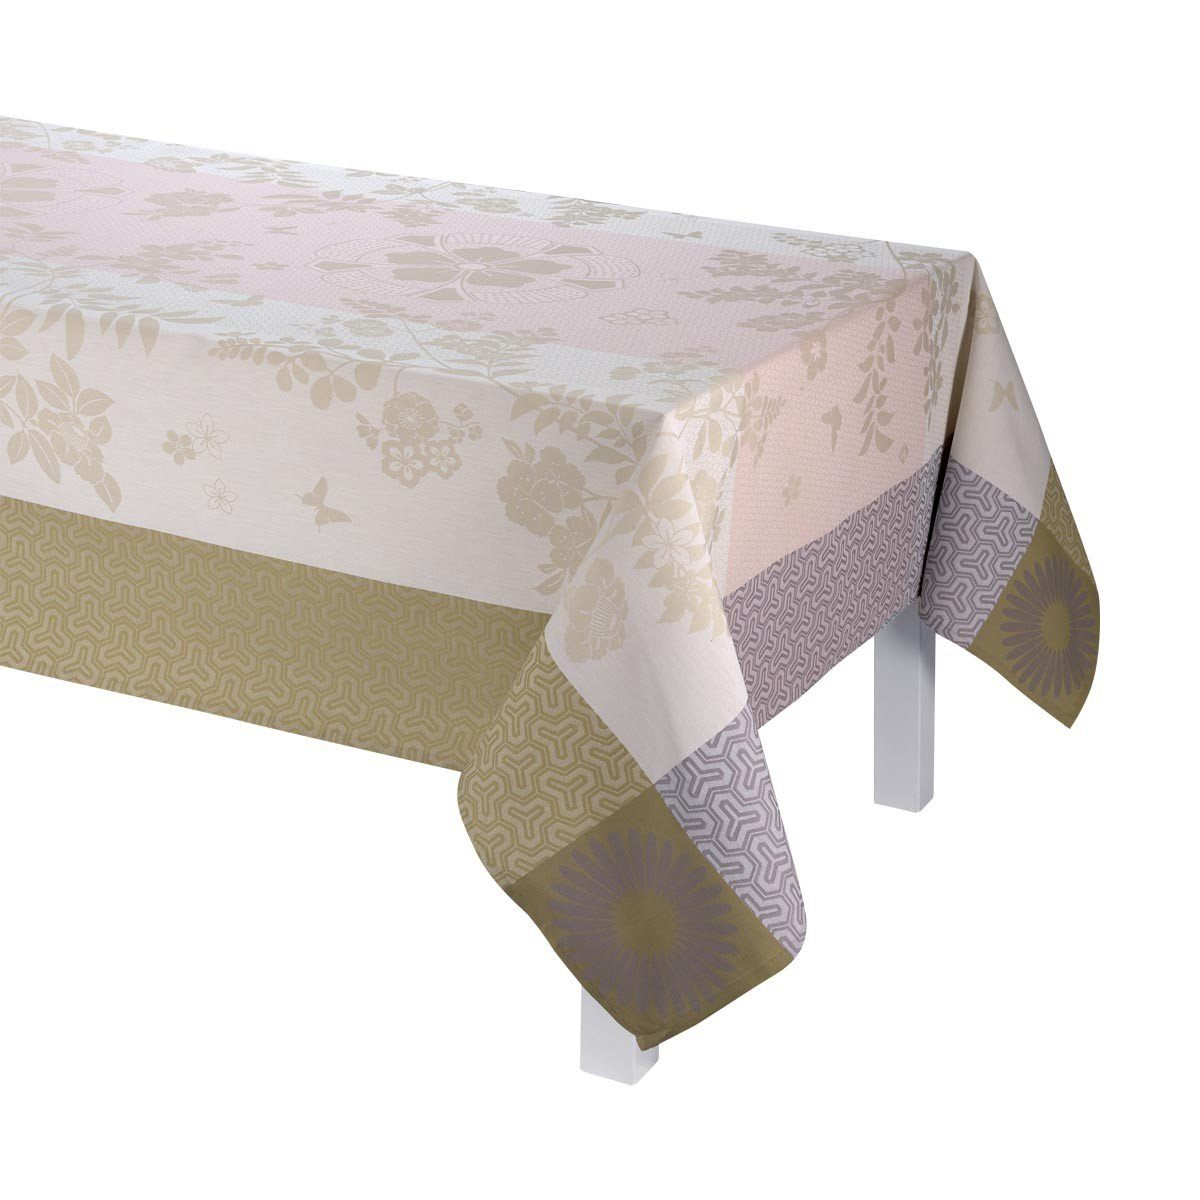 Asia Mood Table Linen Tablecloth Placemat Napkin Runner by Le Jacquard Francais Fig Linens